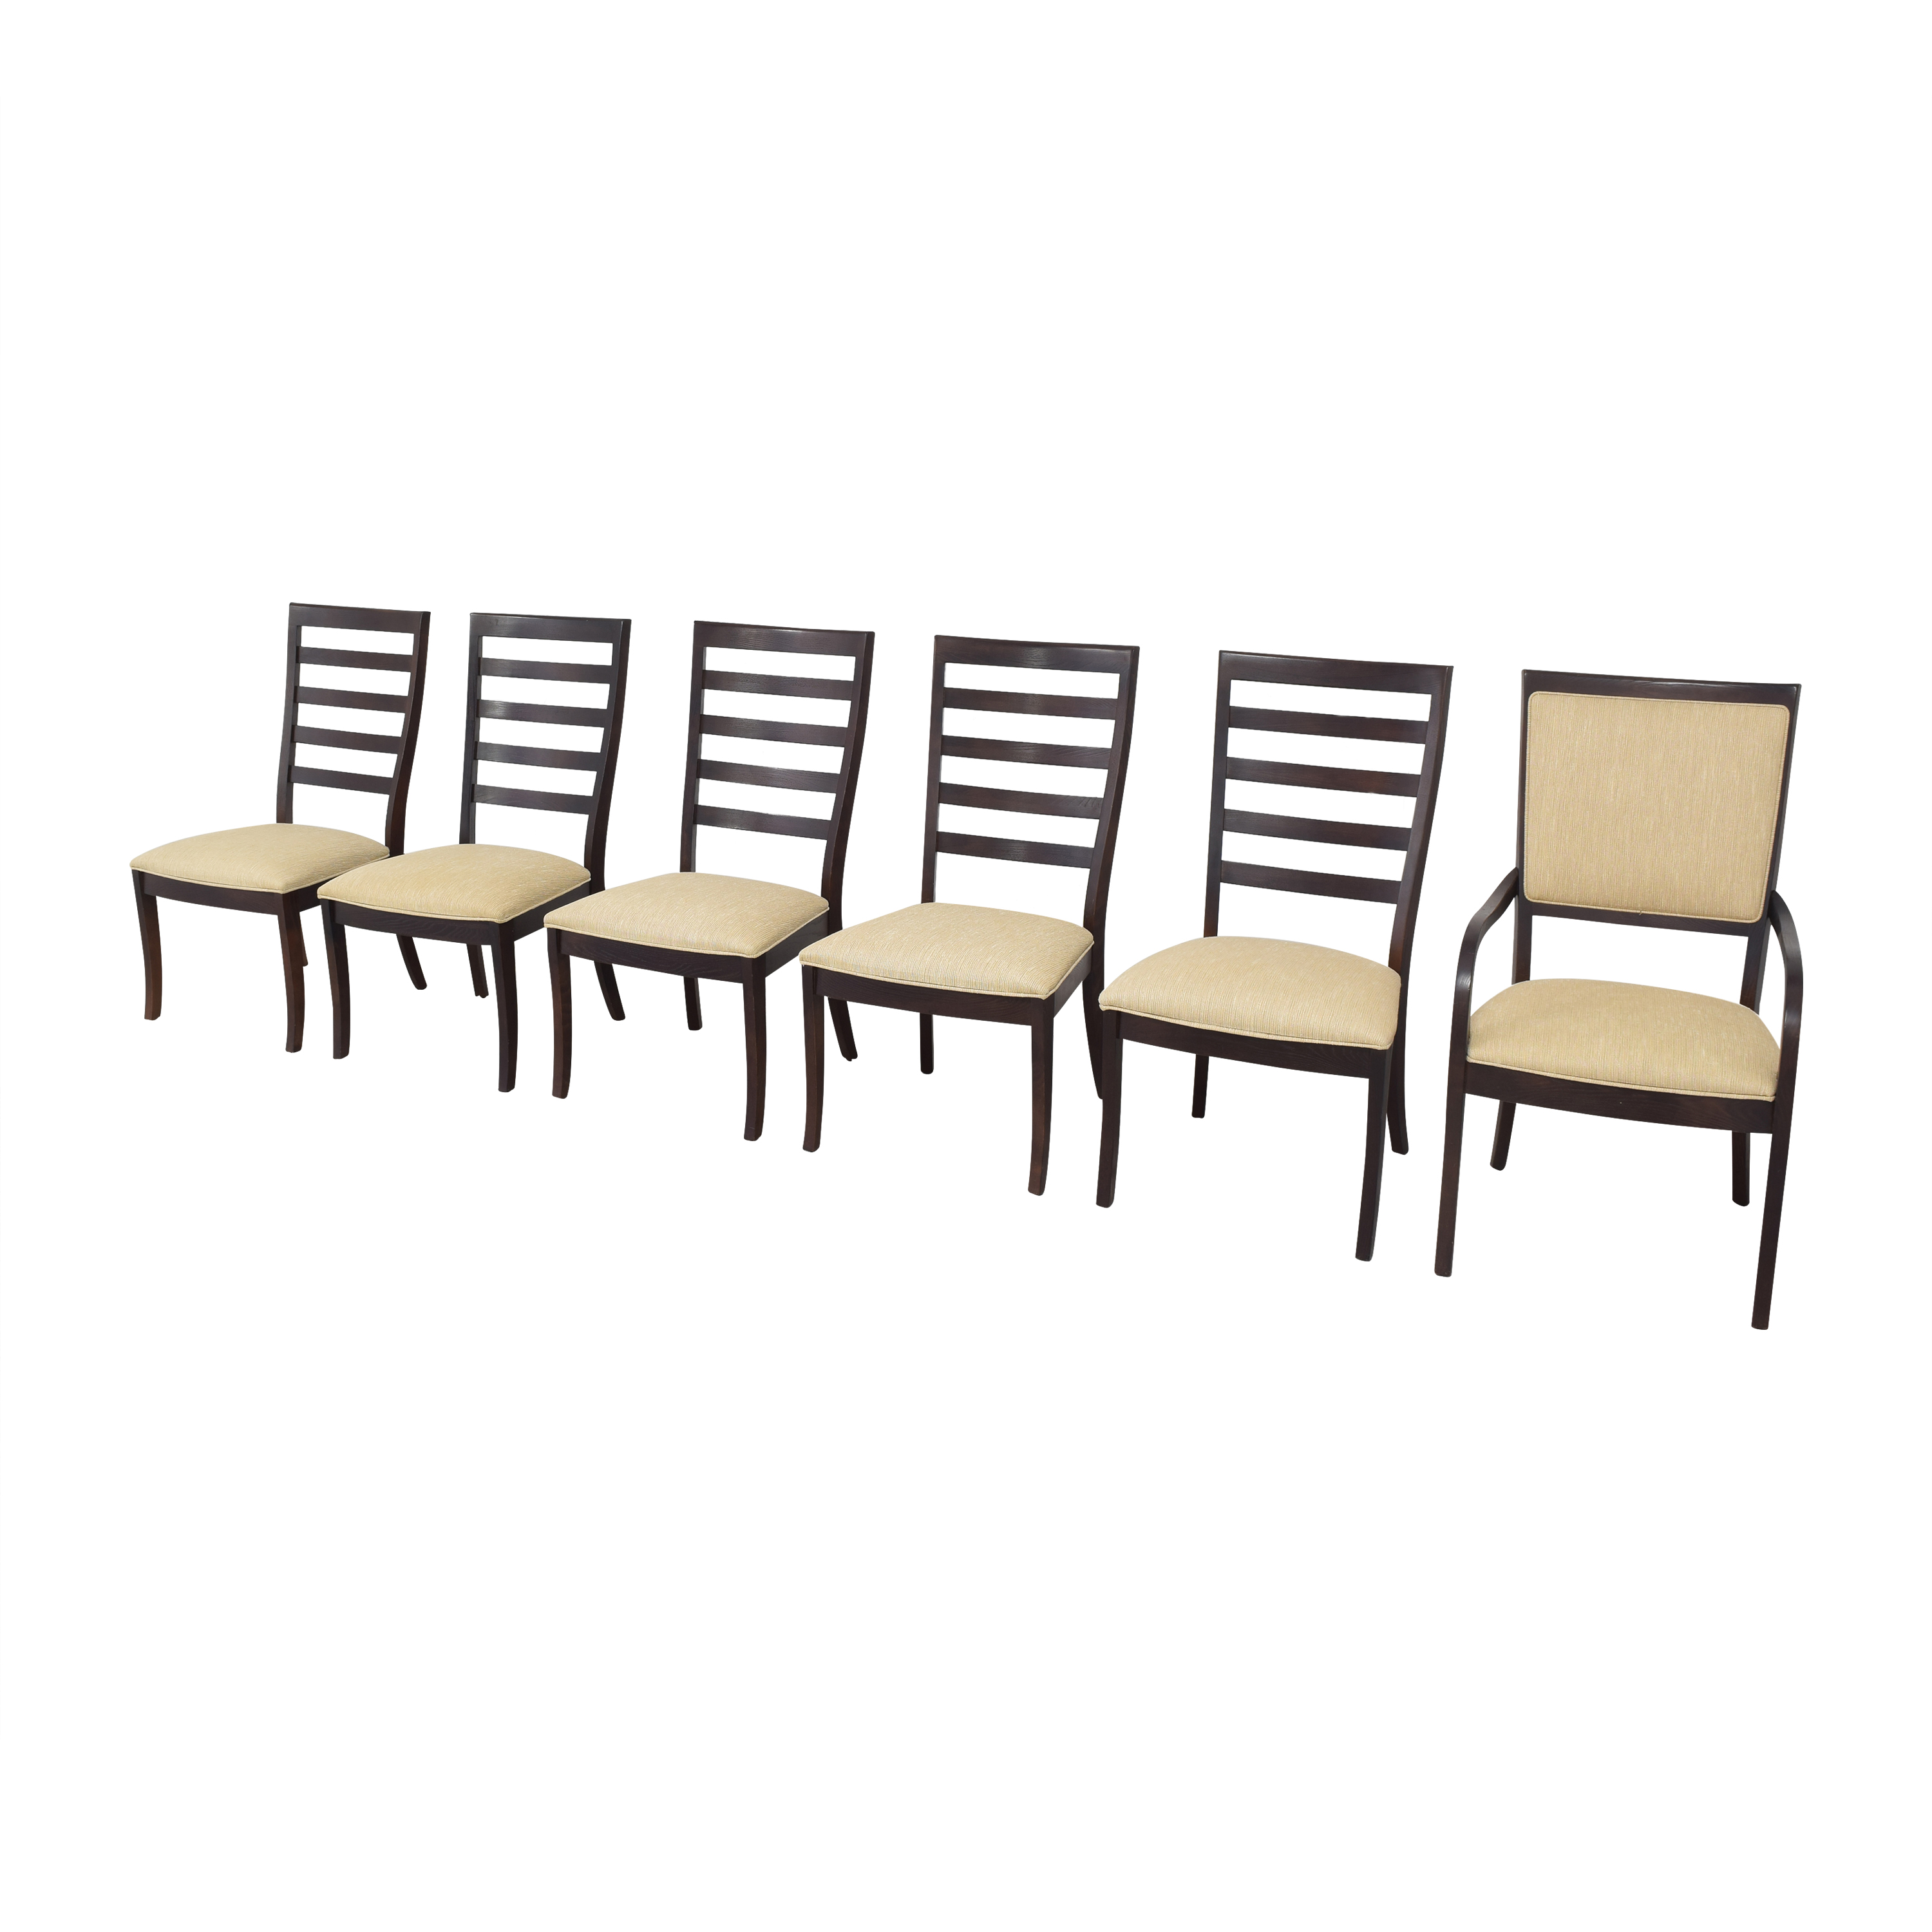 Stanley Slat Dining Chairs / Chairs